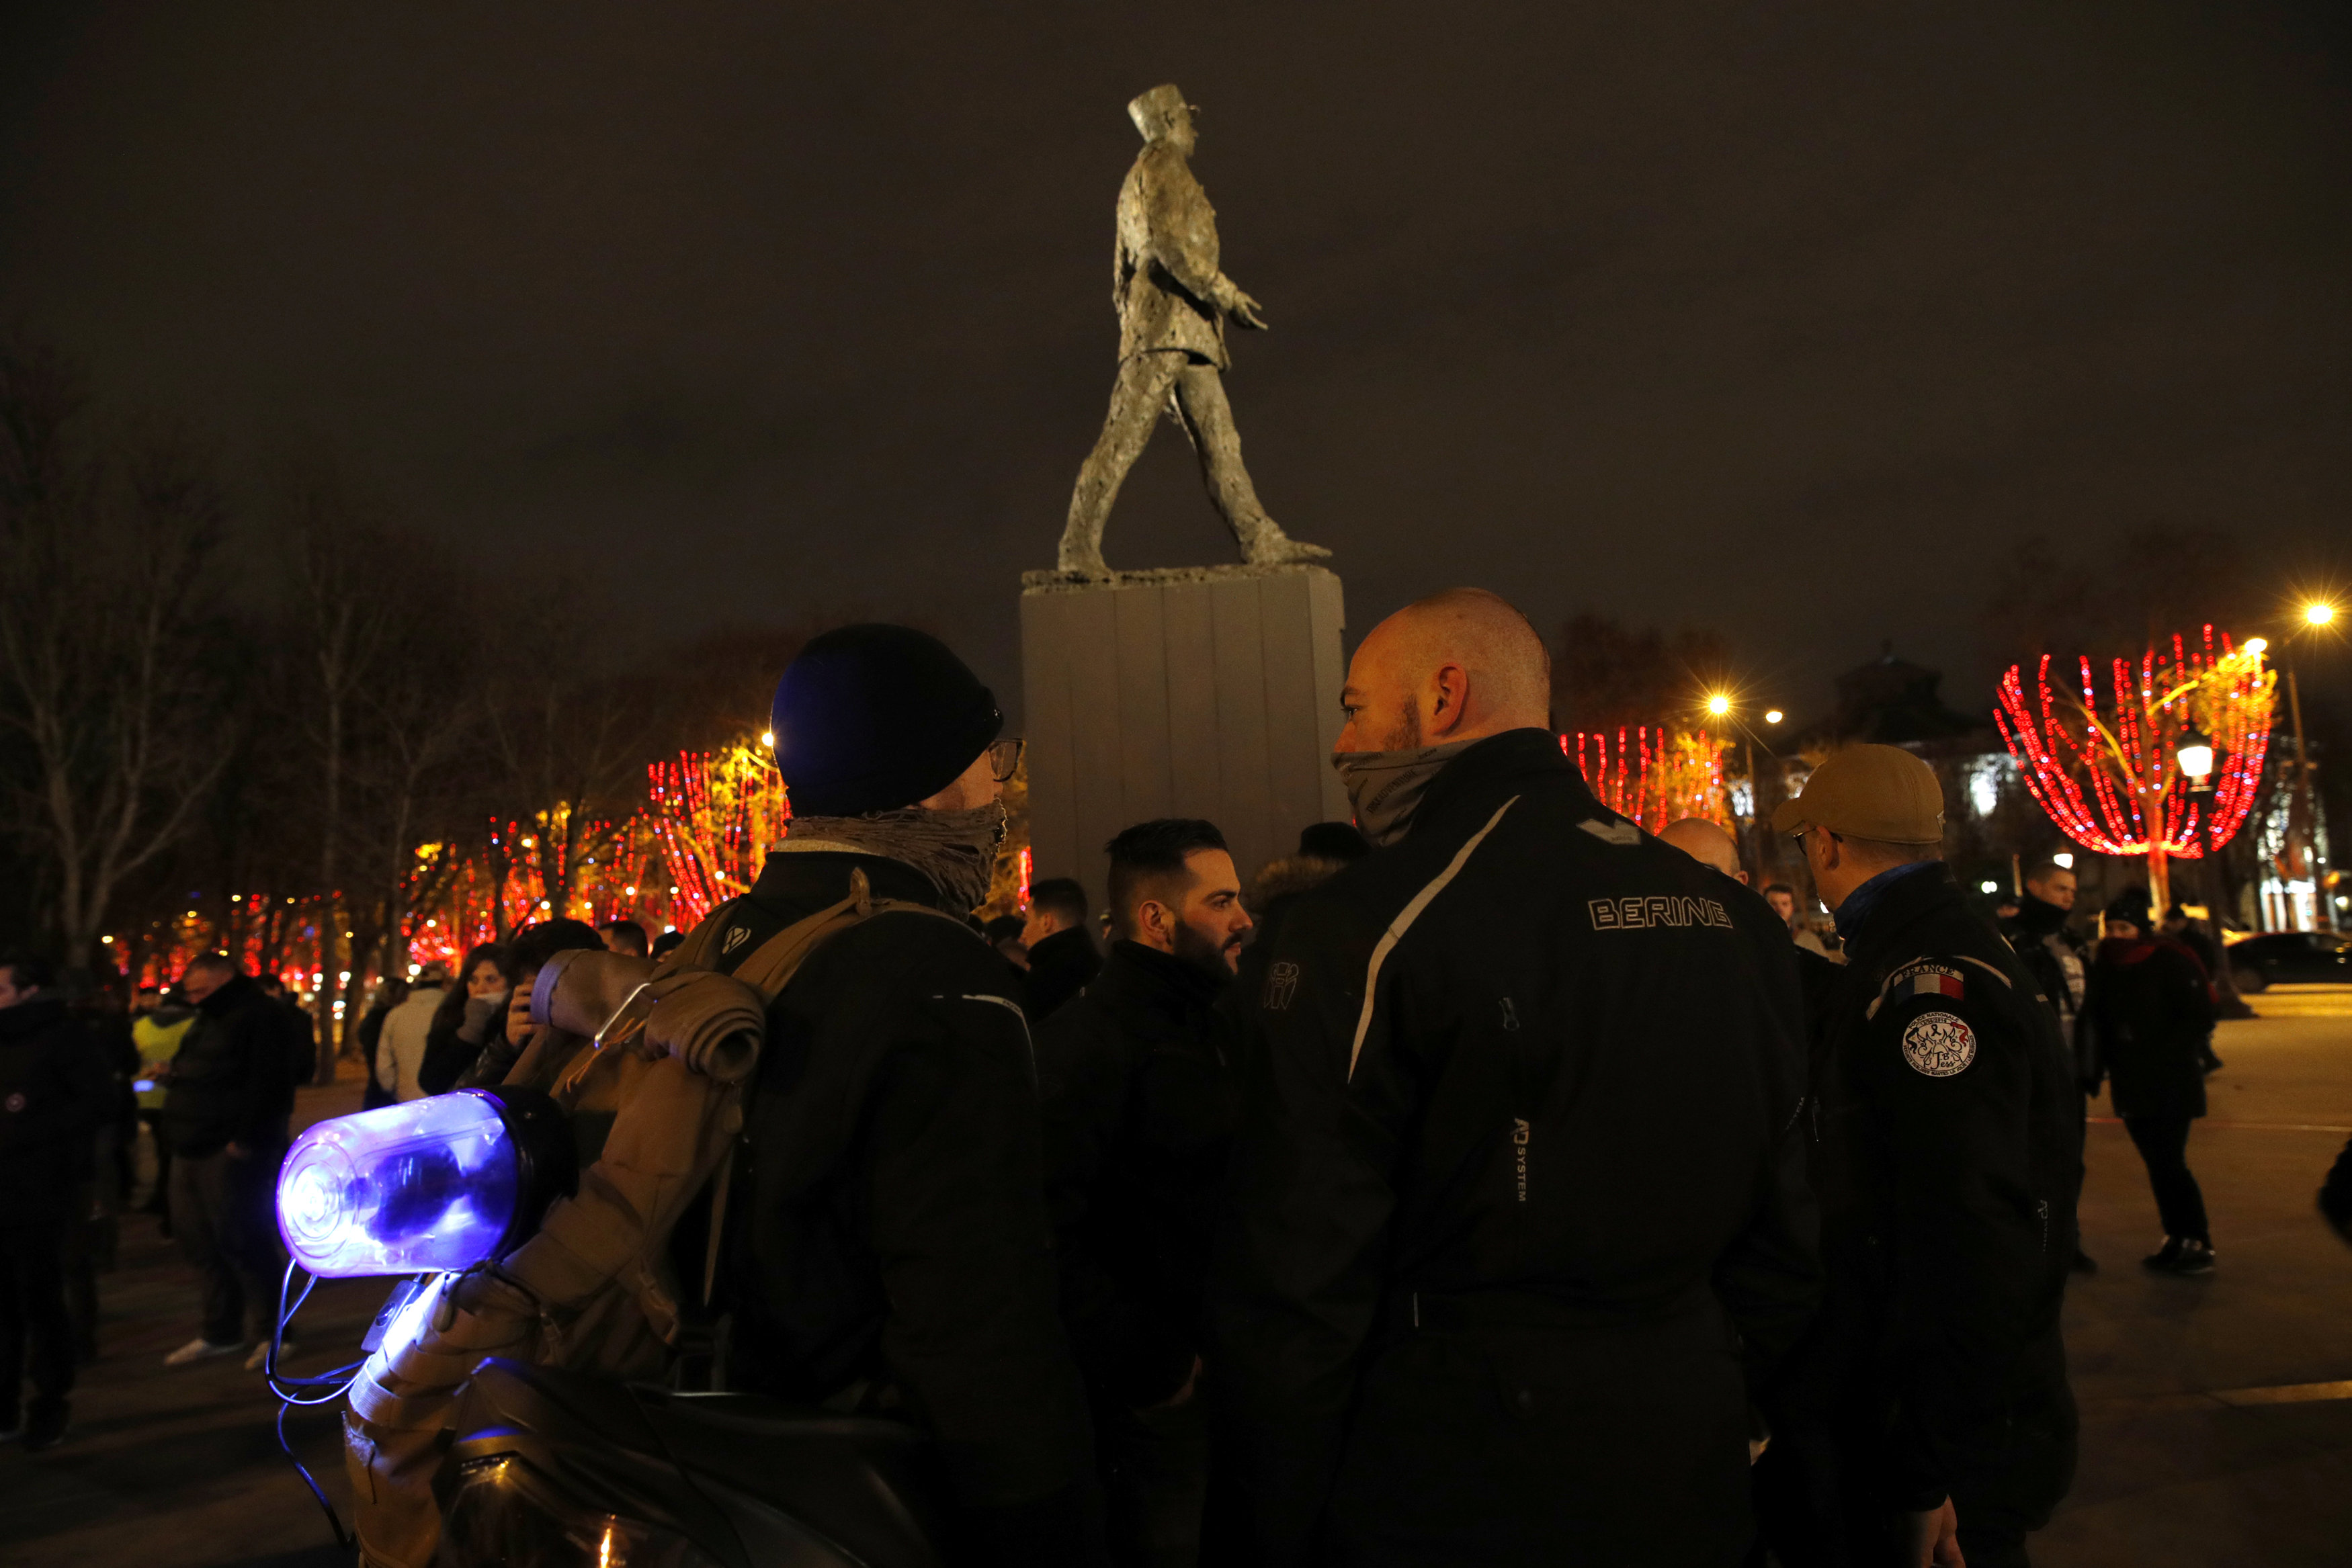 2018-12-20T222557Z_492069207_RC1AC70A4DE0_RTRMADP_3_FRANCE-PROTESTS-POLICE